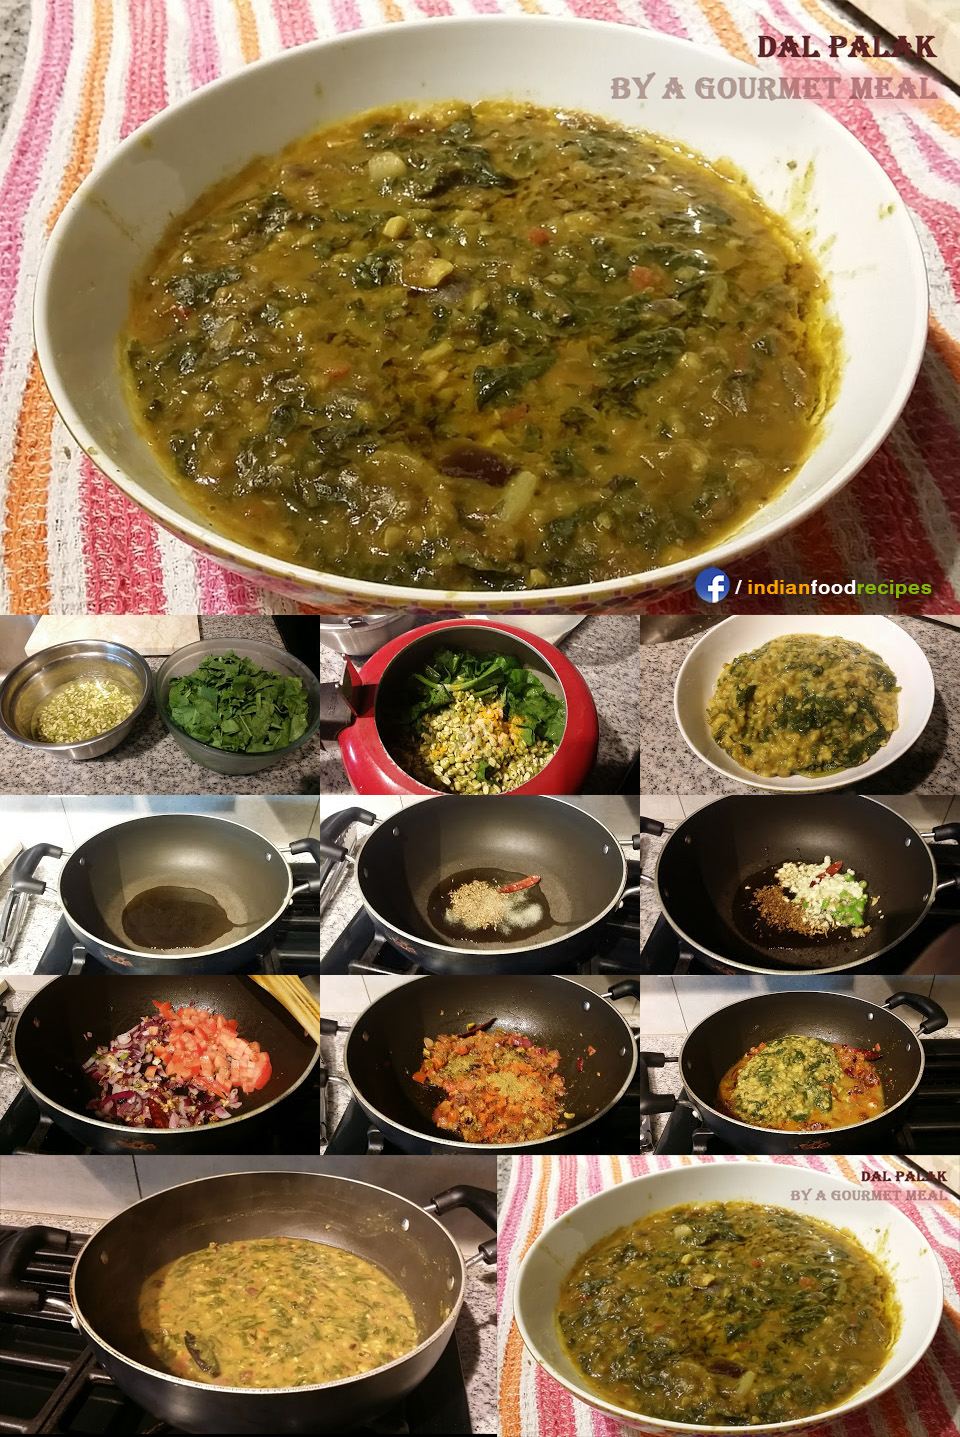 Dal Palak recipe step by step